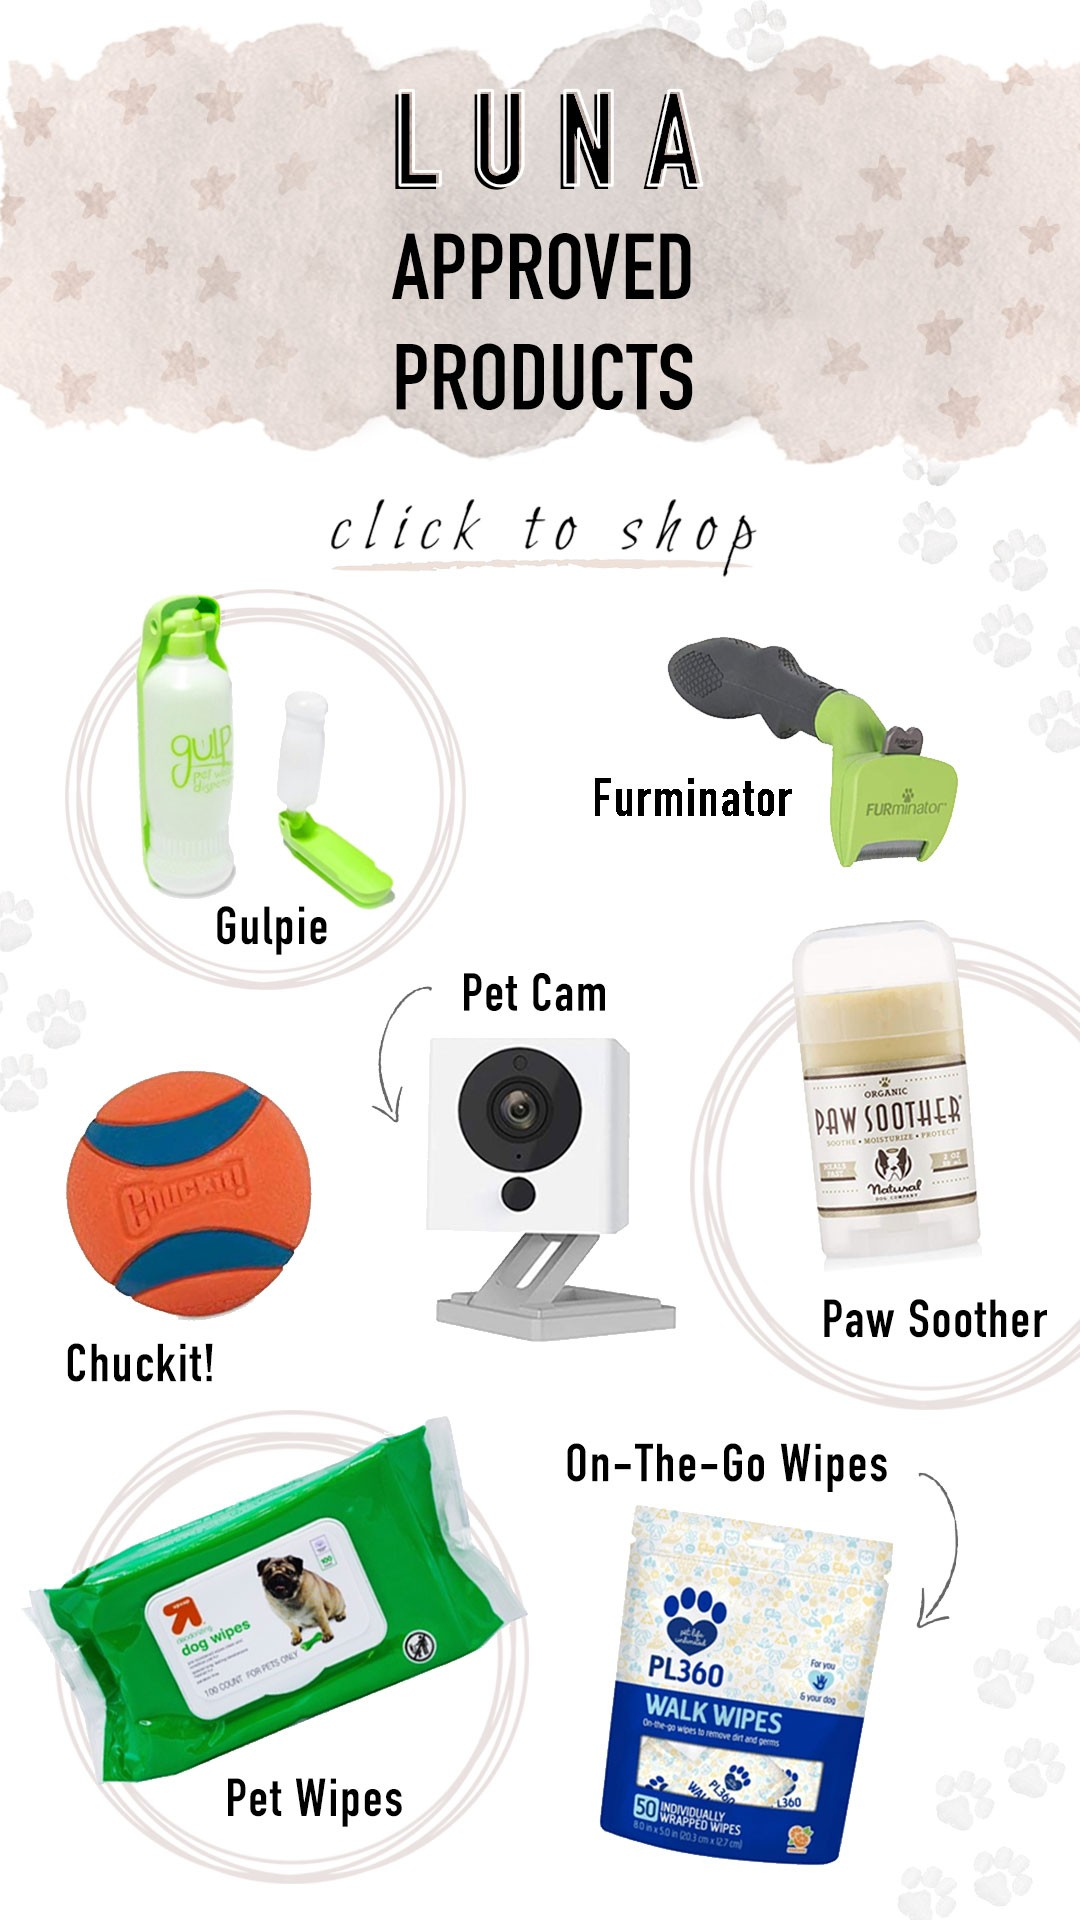 Luna-Approved Pet products